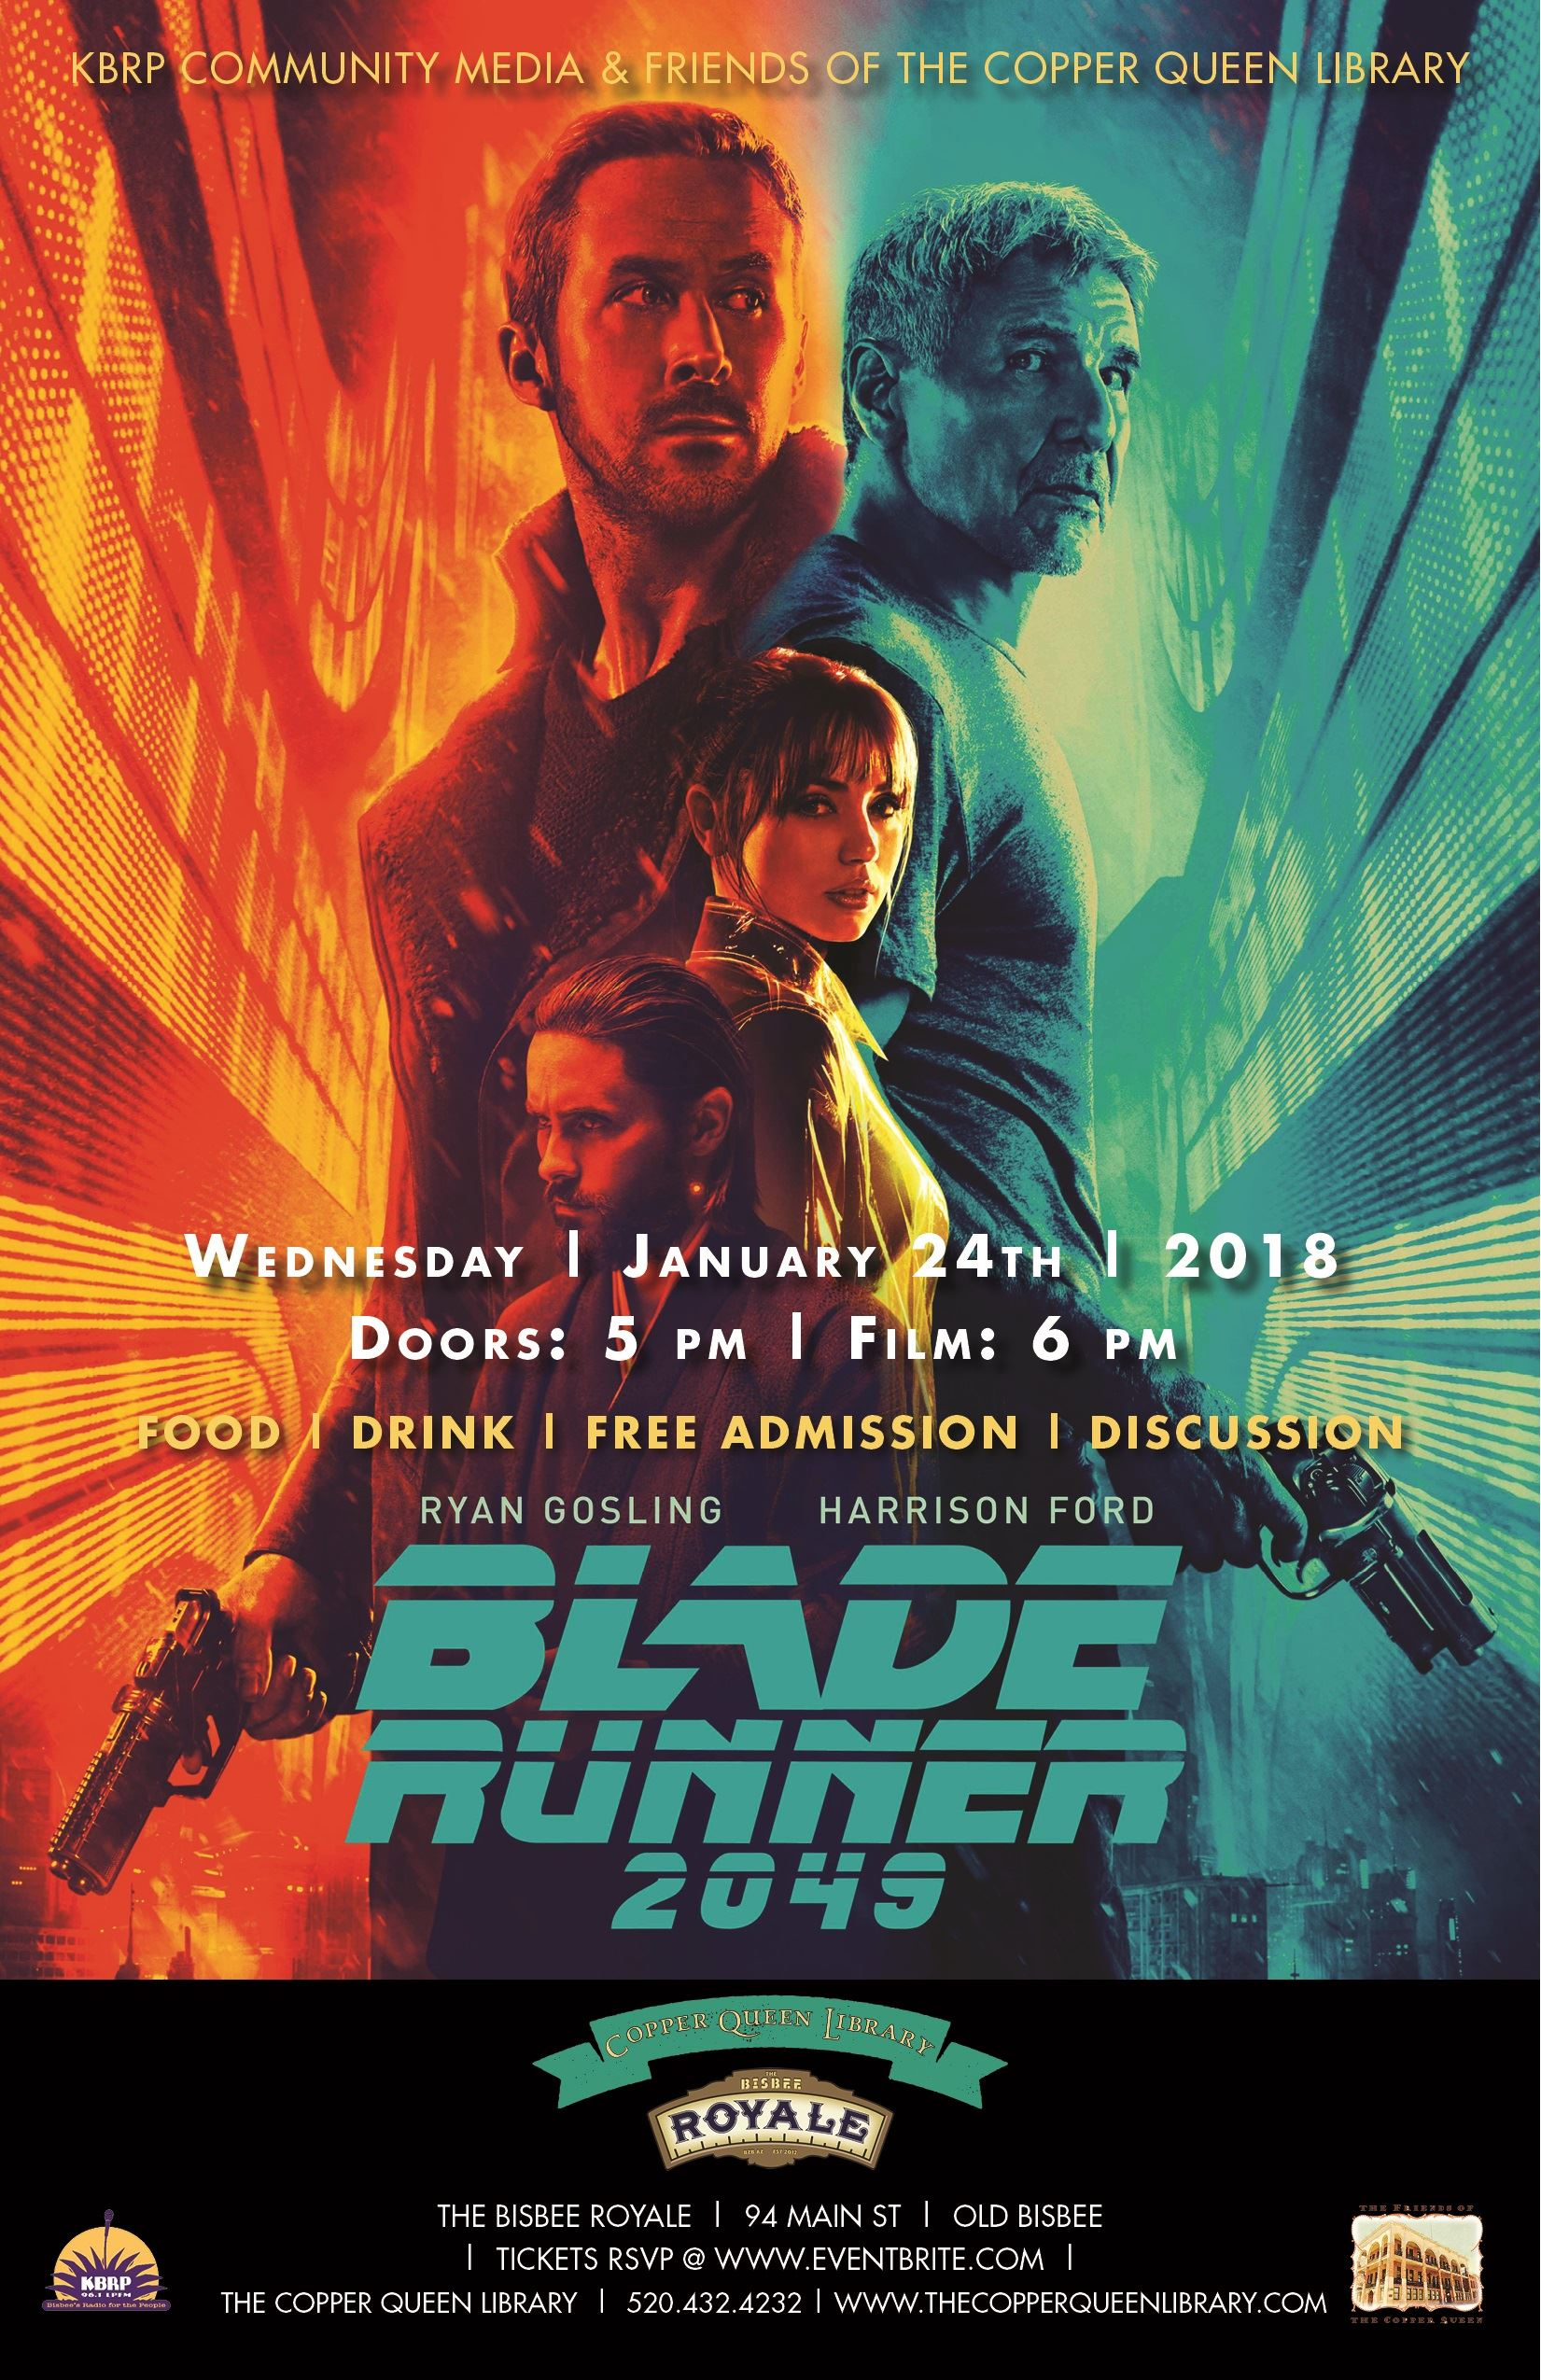 CQL ROYALE BLADE RUNNER 2049 JAN 2018 11 X 17